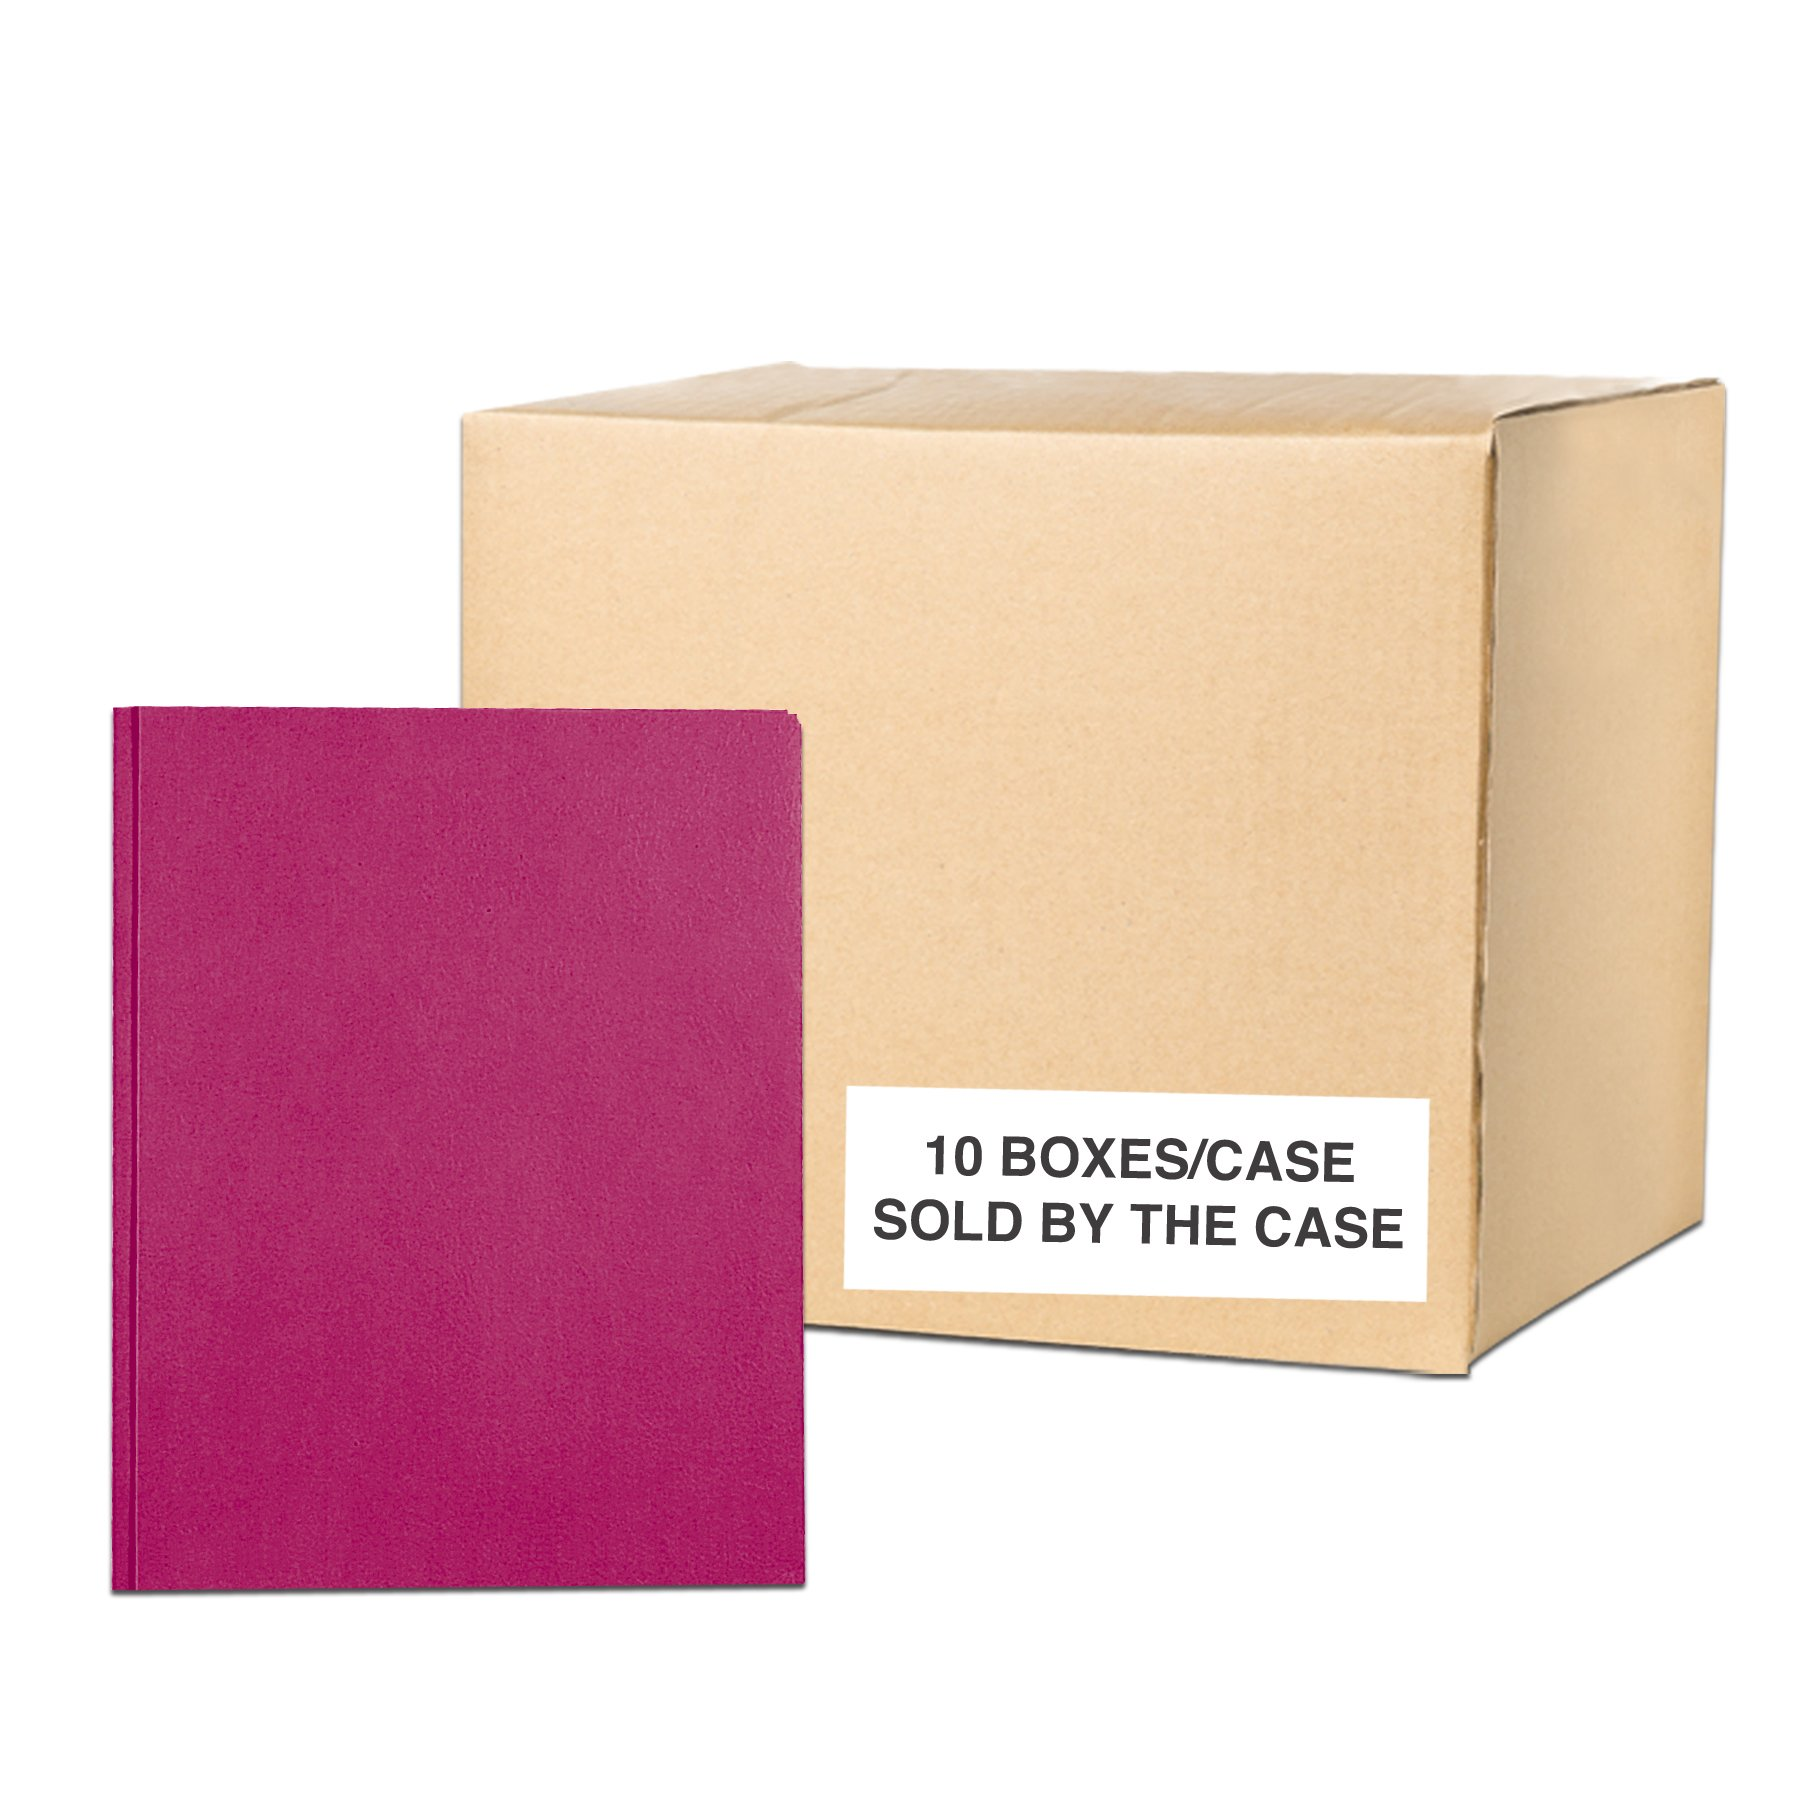 Case of 10 Boxes of Pocket Folders with Prongs, 11.75''x9.5'', Twin Pockets hold 25 sheets each, 11 pt tag board, 25/box, Maroon Color